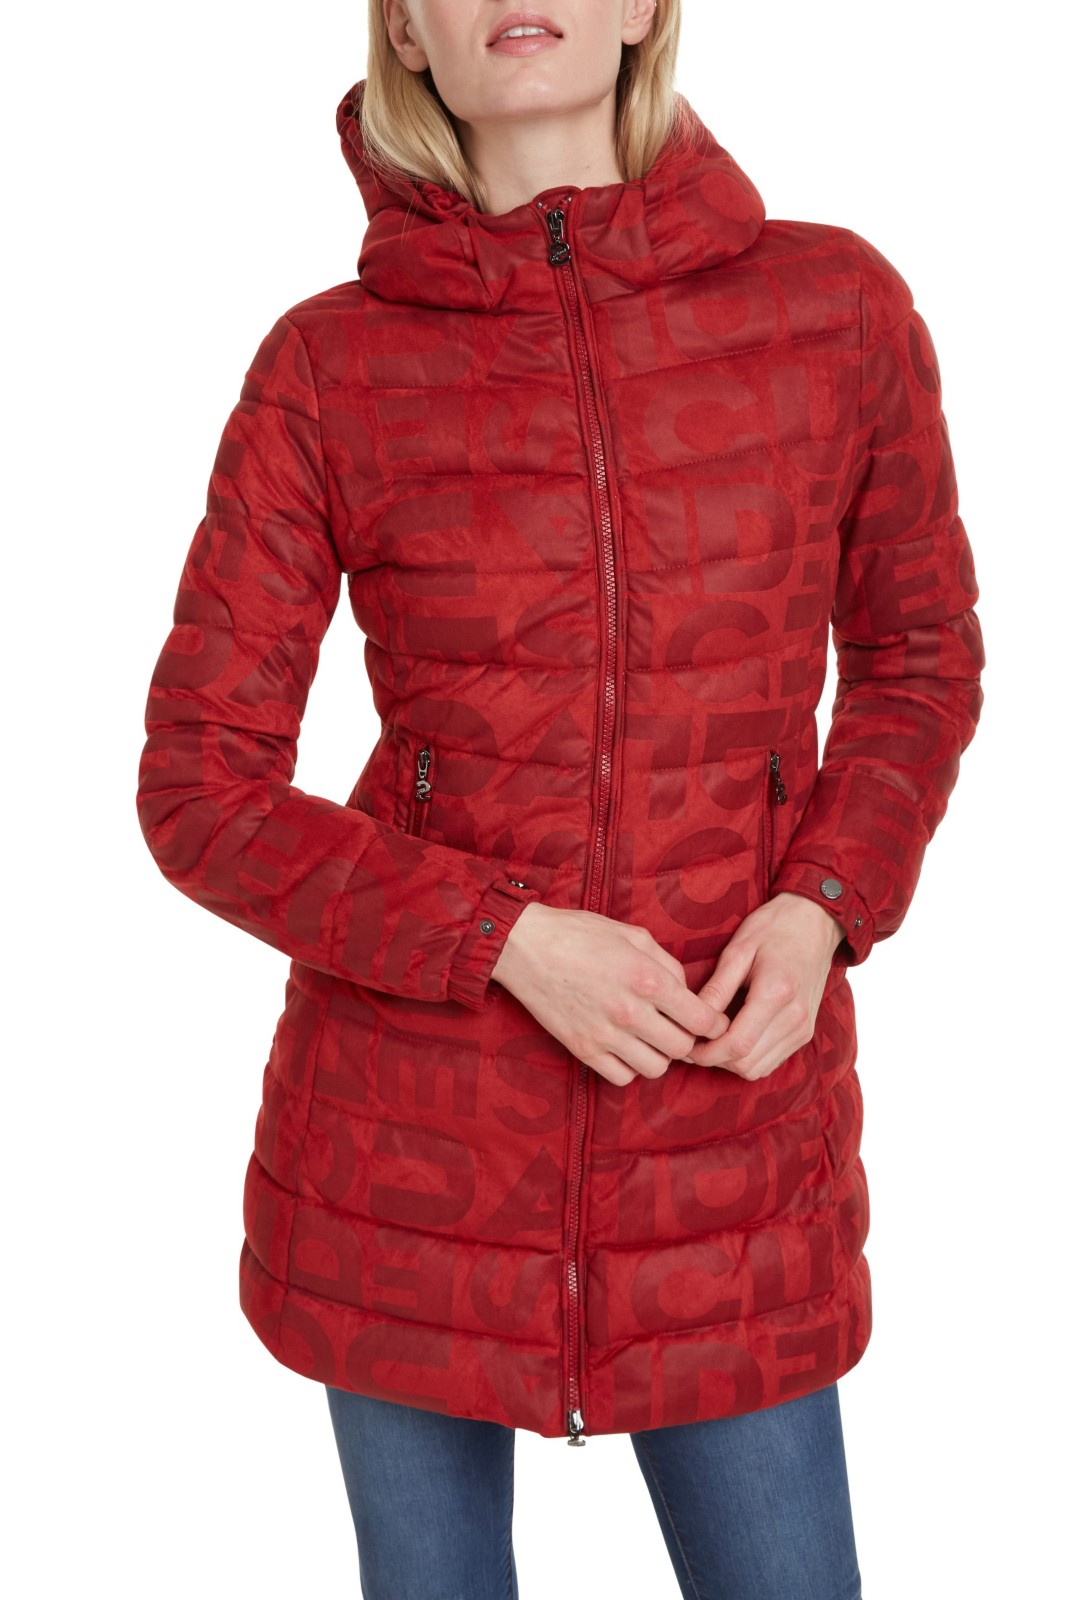 Desigual Red Coat Padded Letras